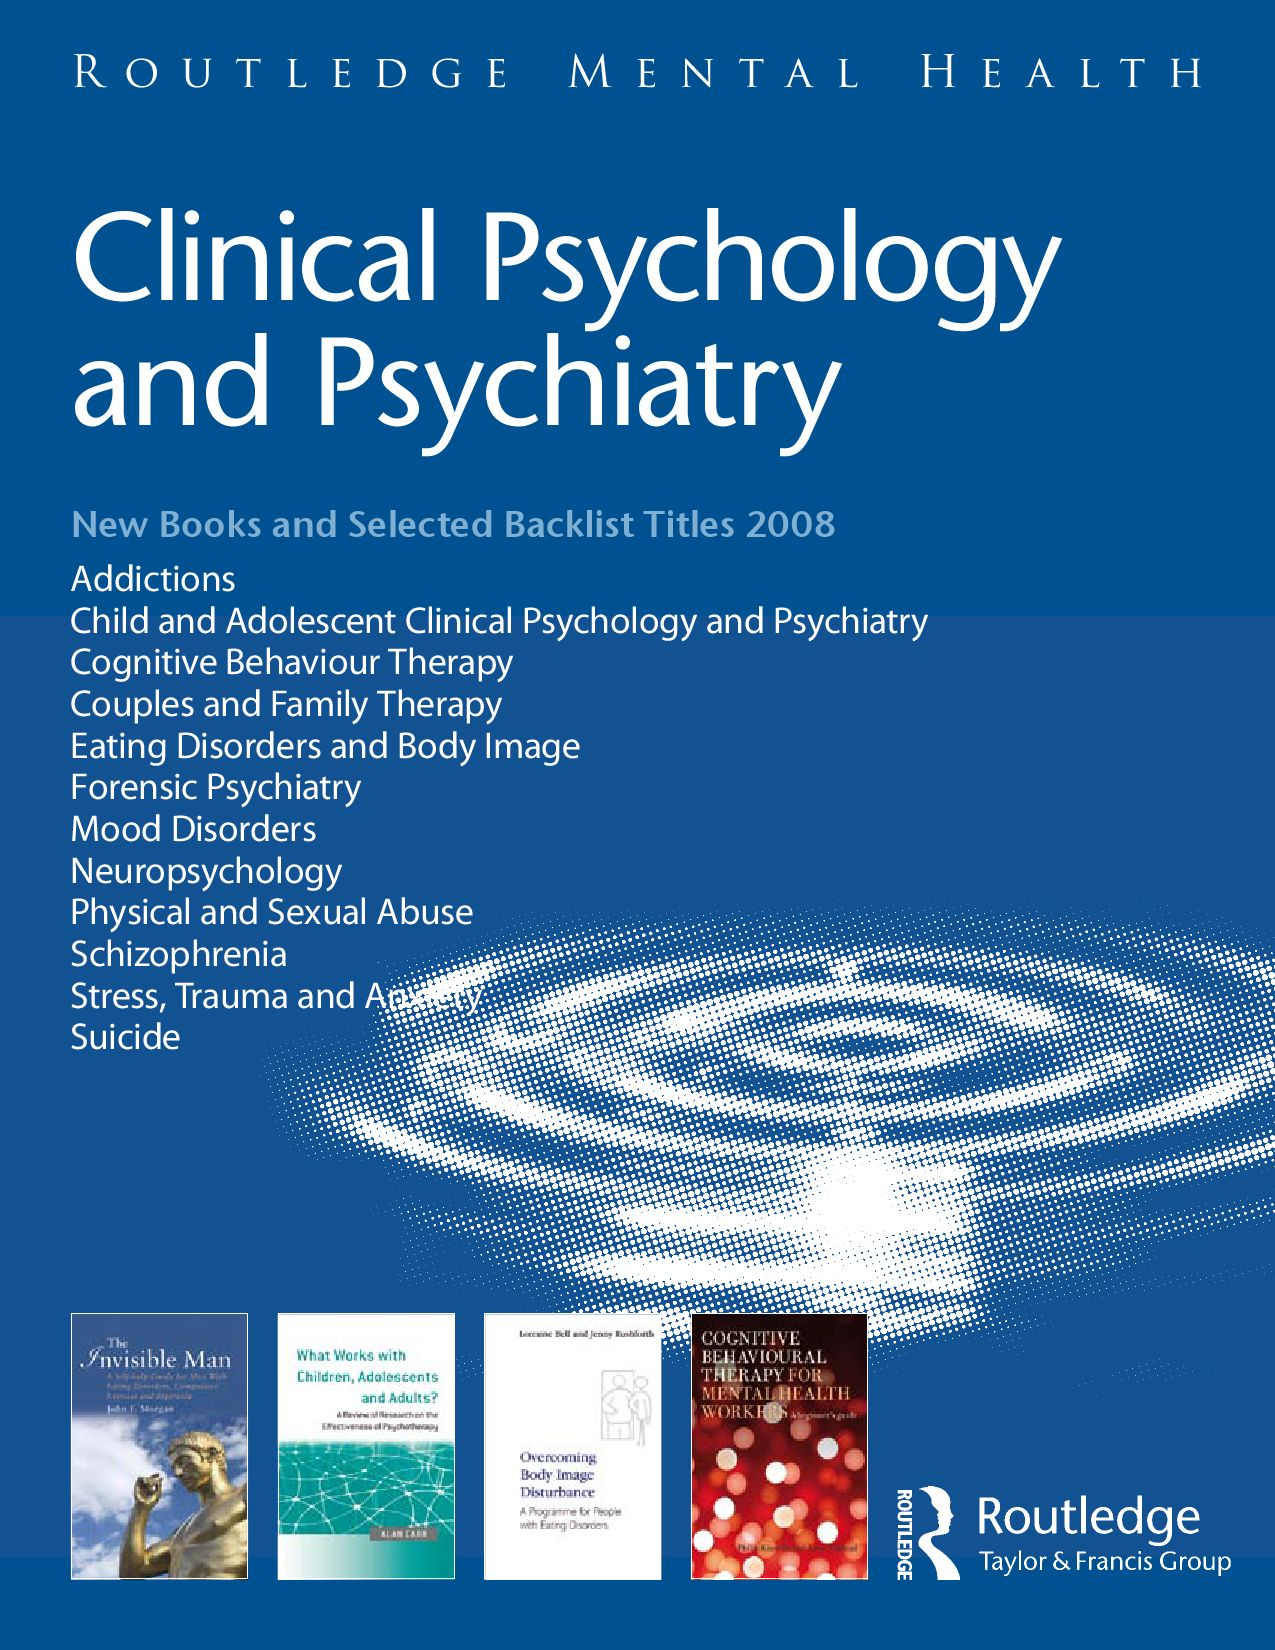 Clinical Psychology and Psychiatry by Psychology Press / Routledge